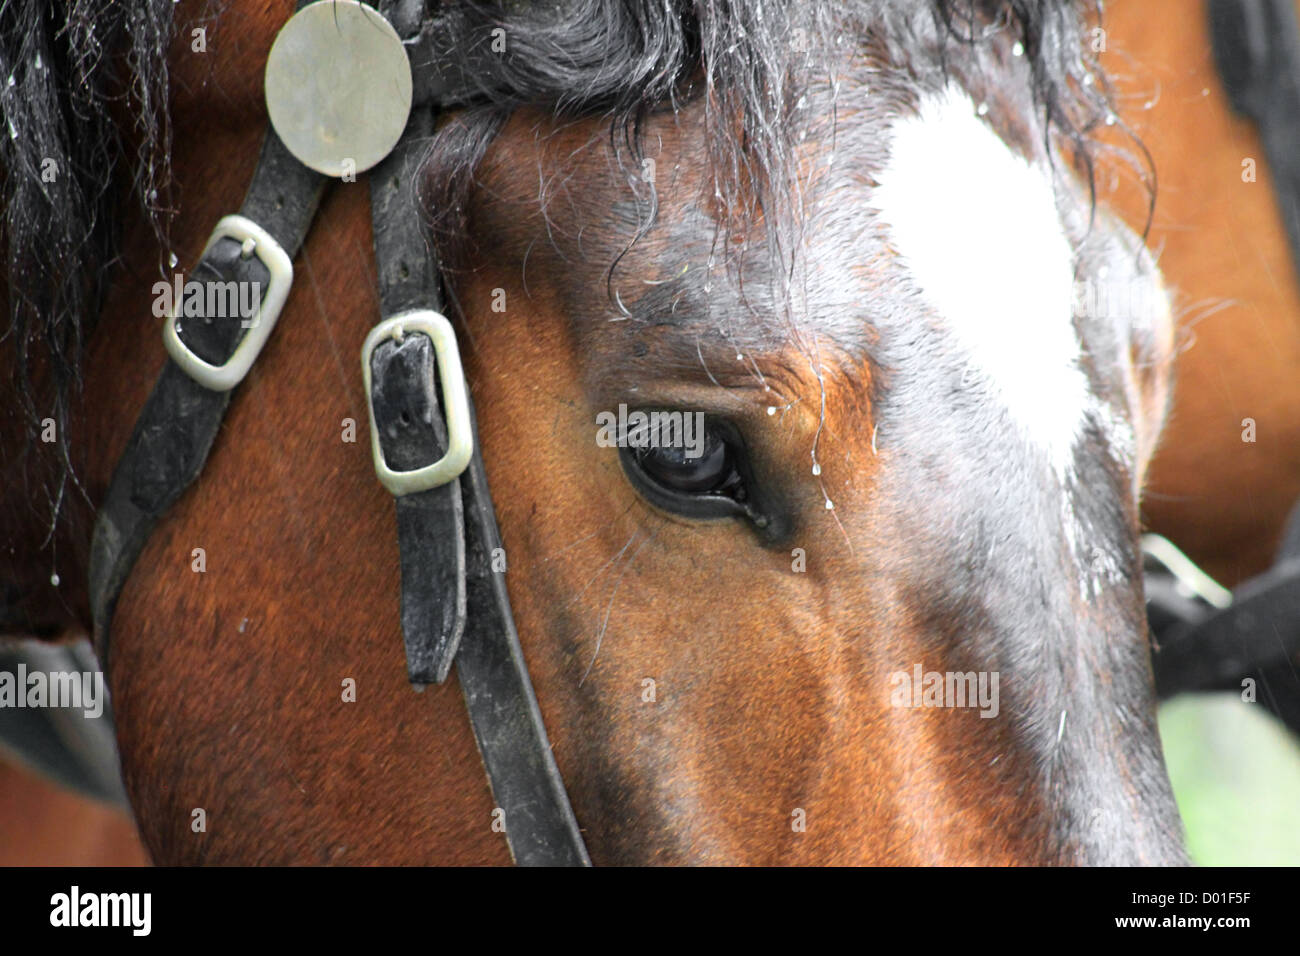 Bay horse in a harness - Stock Image